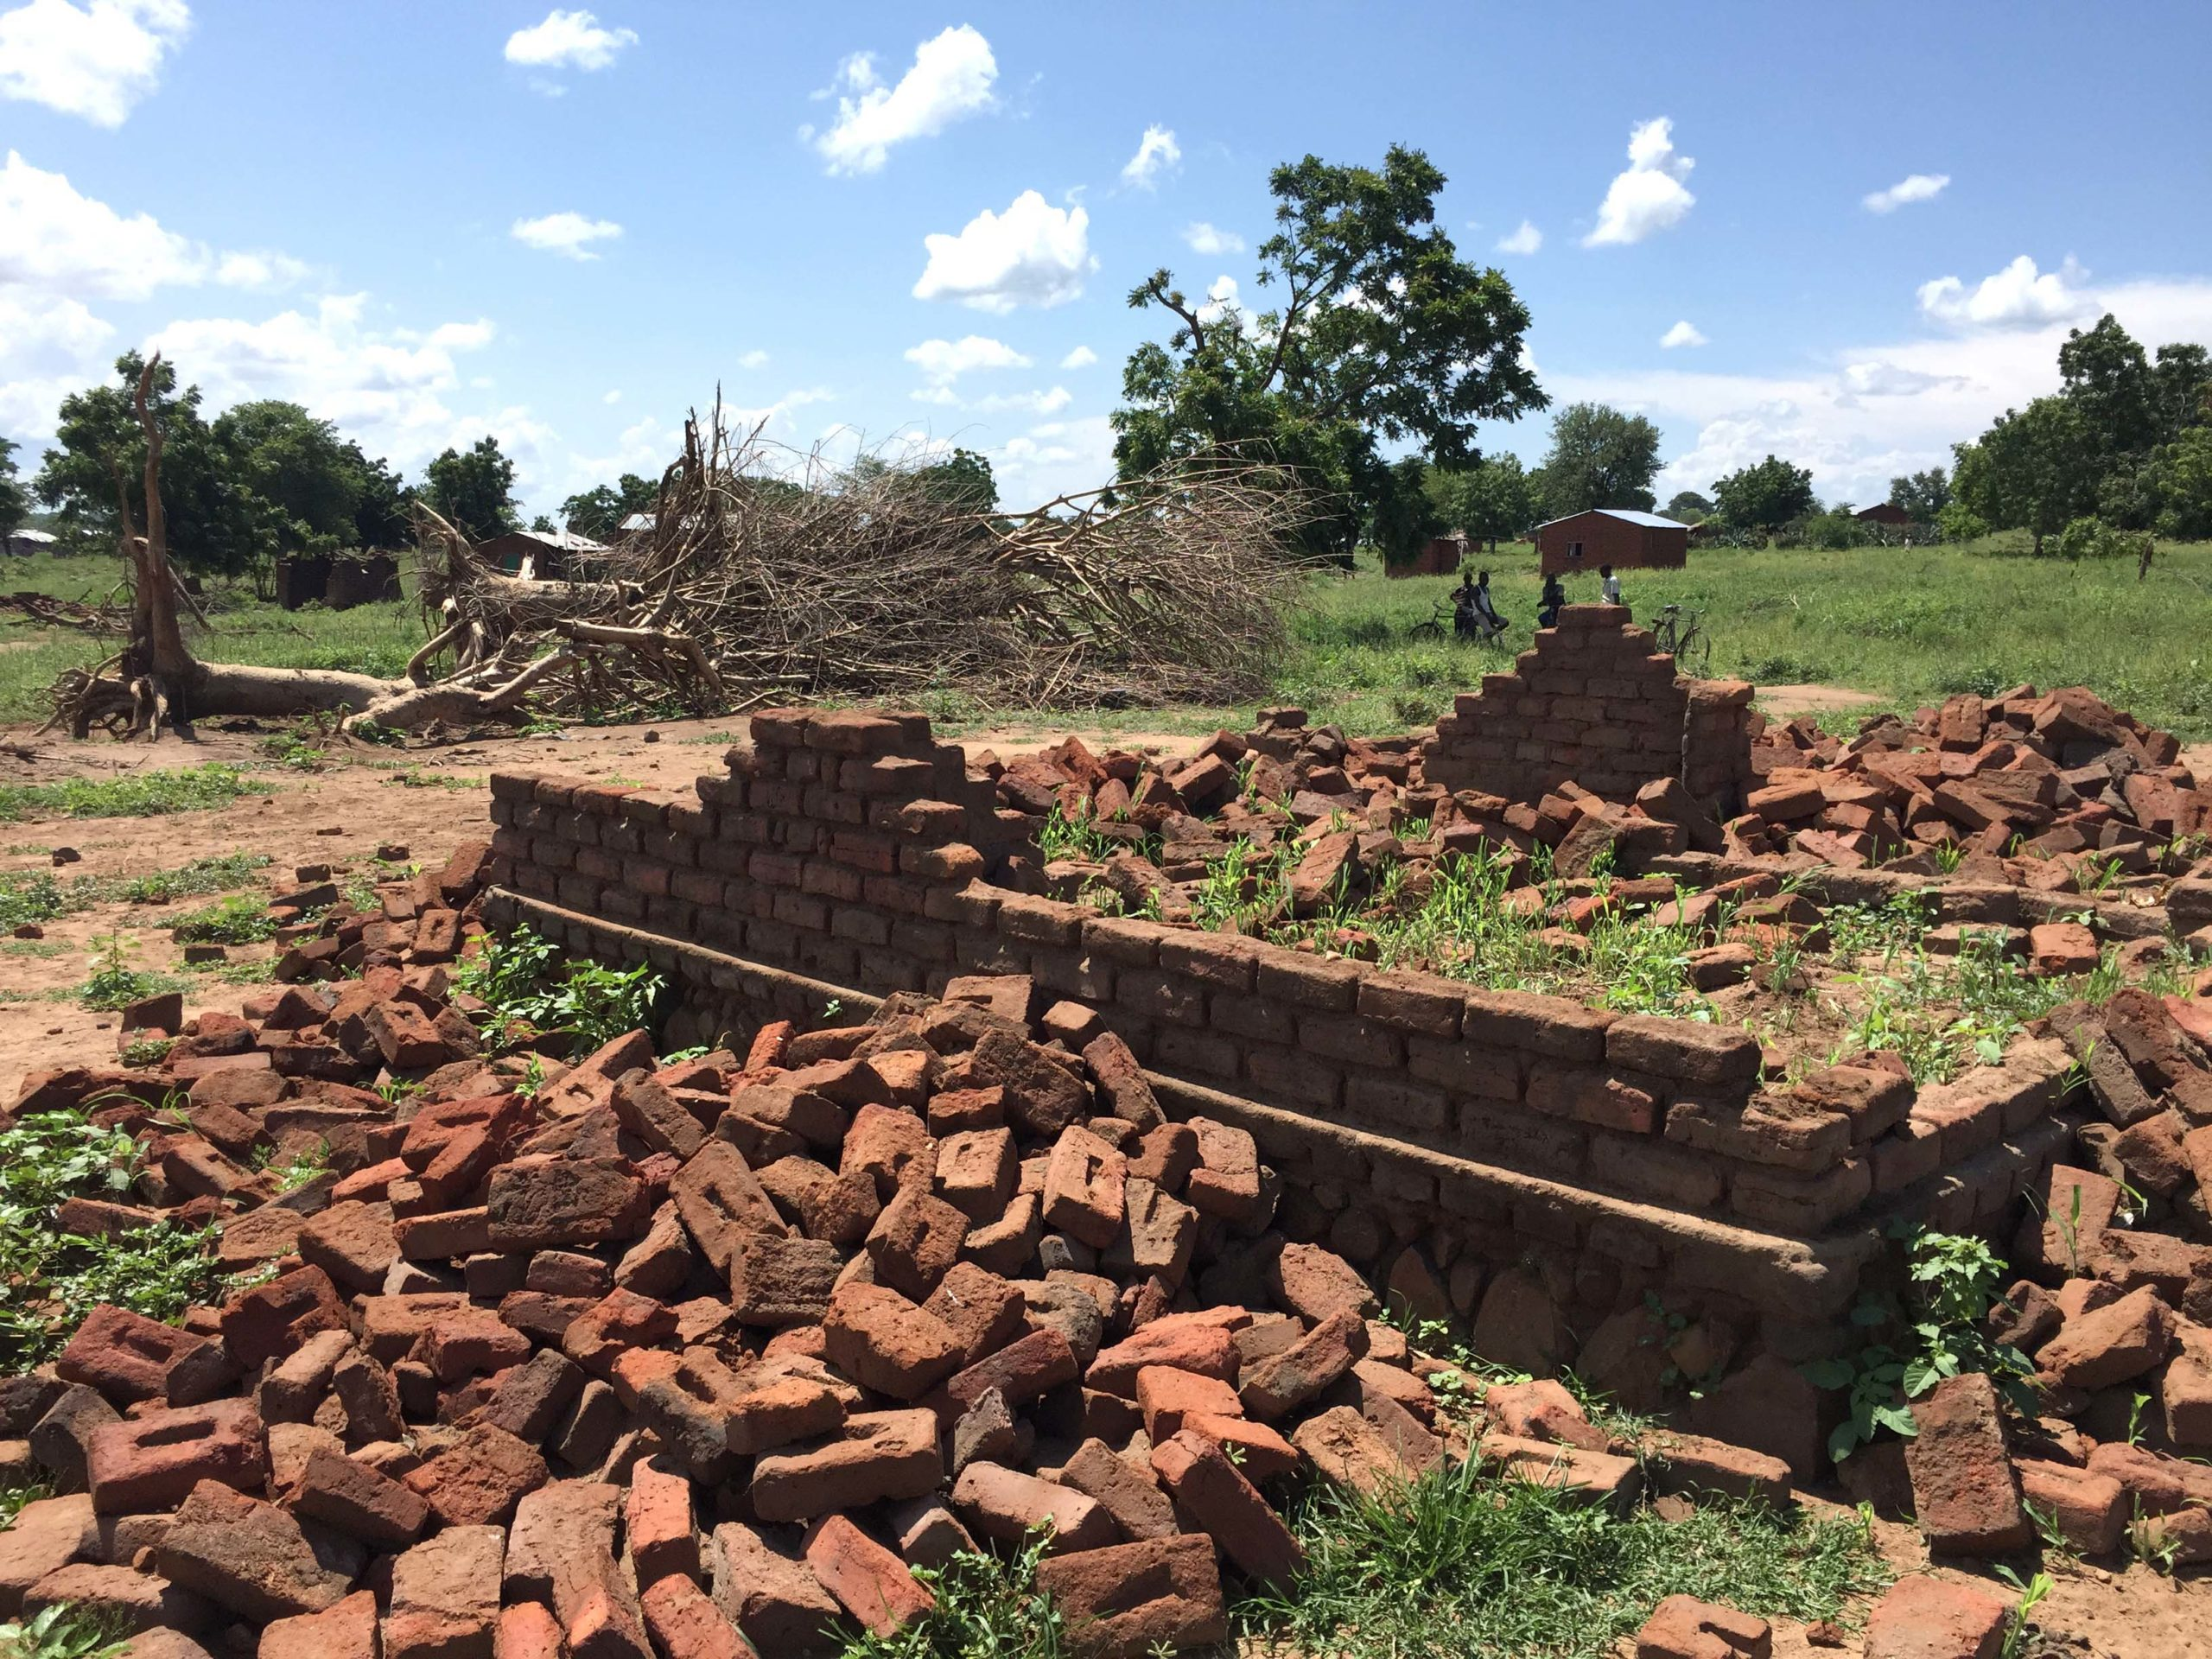 A pile of bricks surrounds the frame of a destroyed house in Malawi